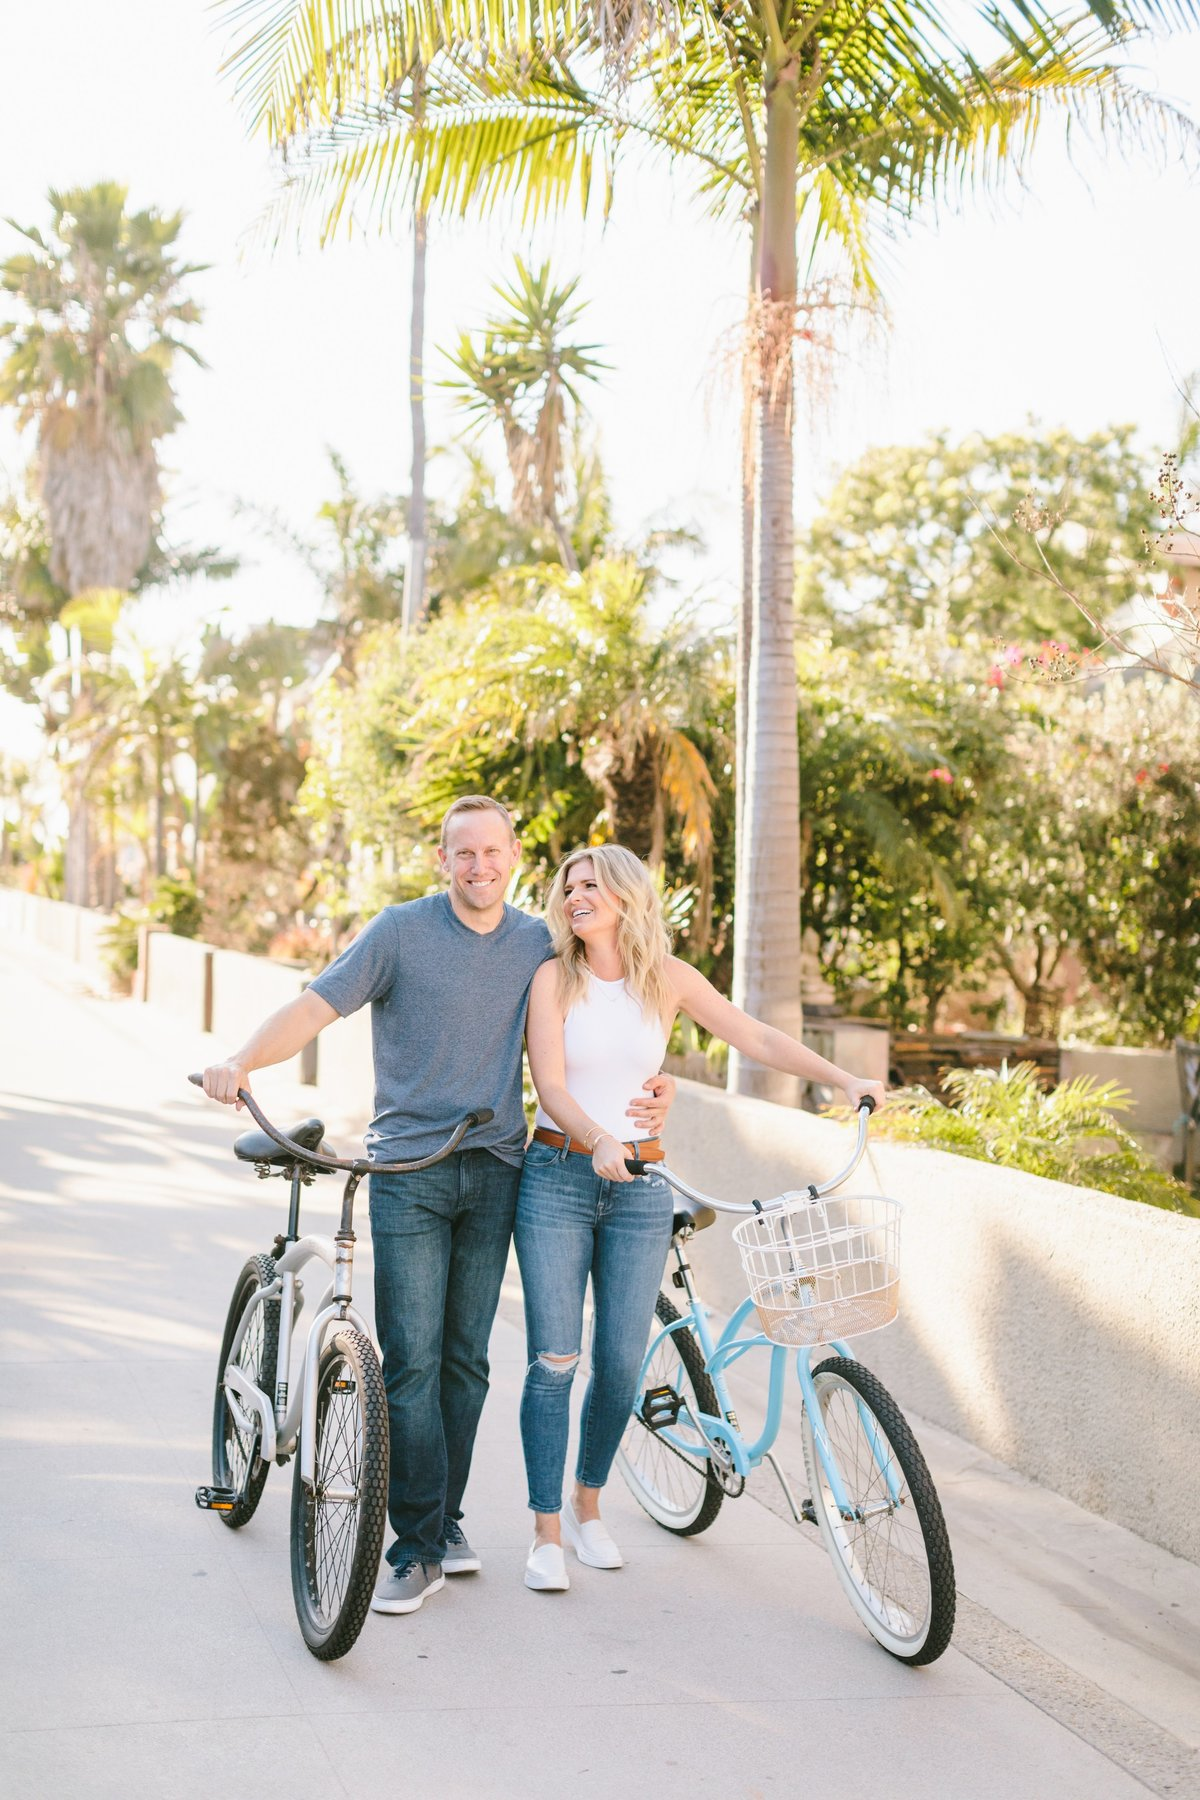 Best California Engagement Photographer-Jodee Debes Photography-228